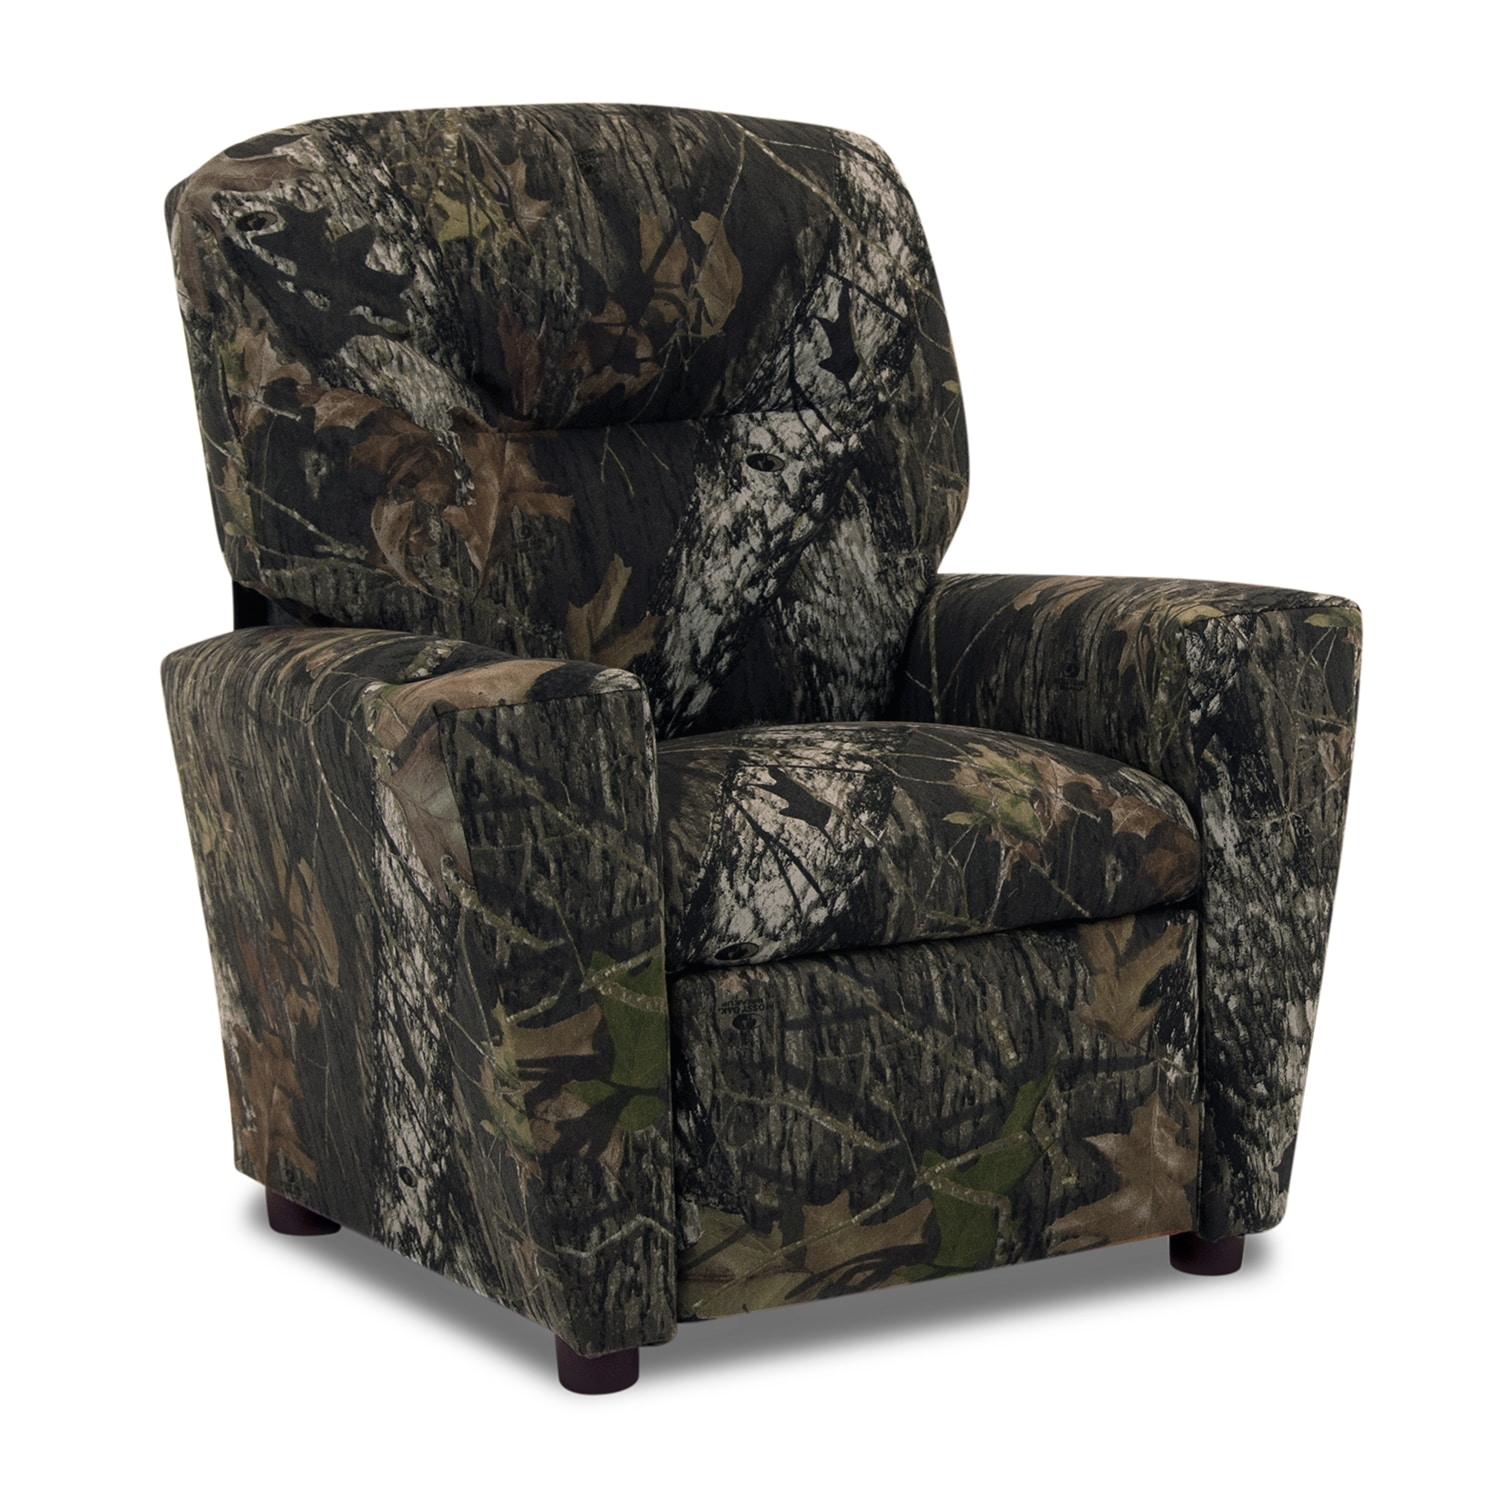 Living Room Furniture - Mossy Oak Child's Recliner - Camouflage